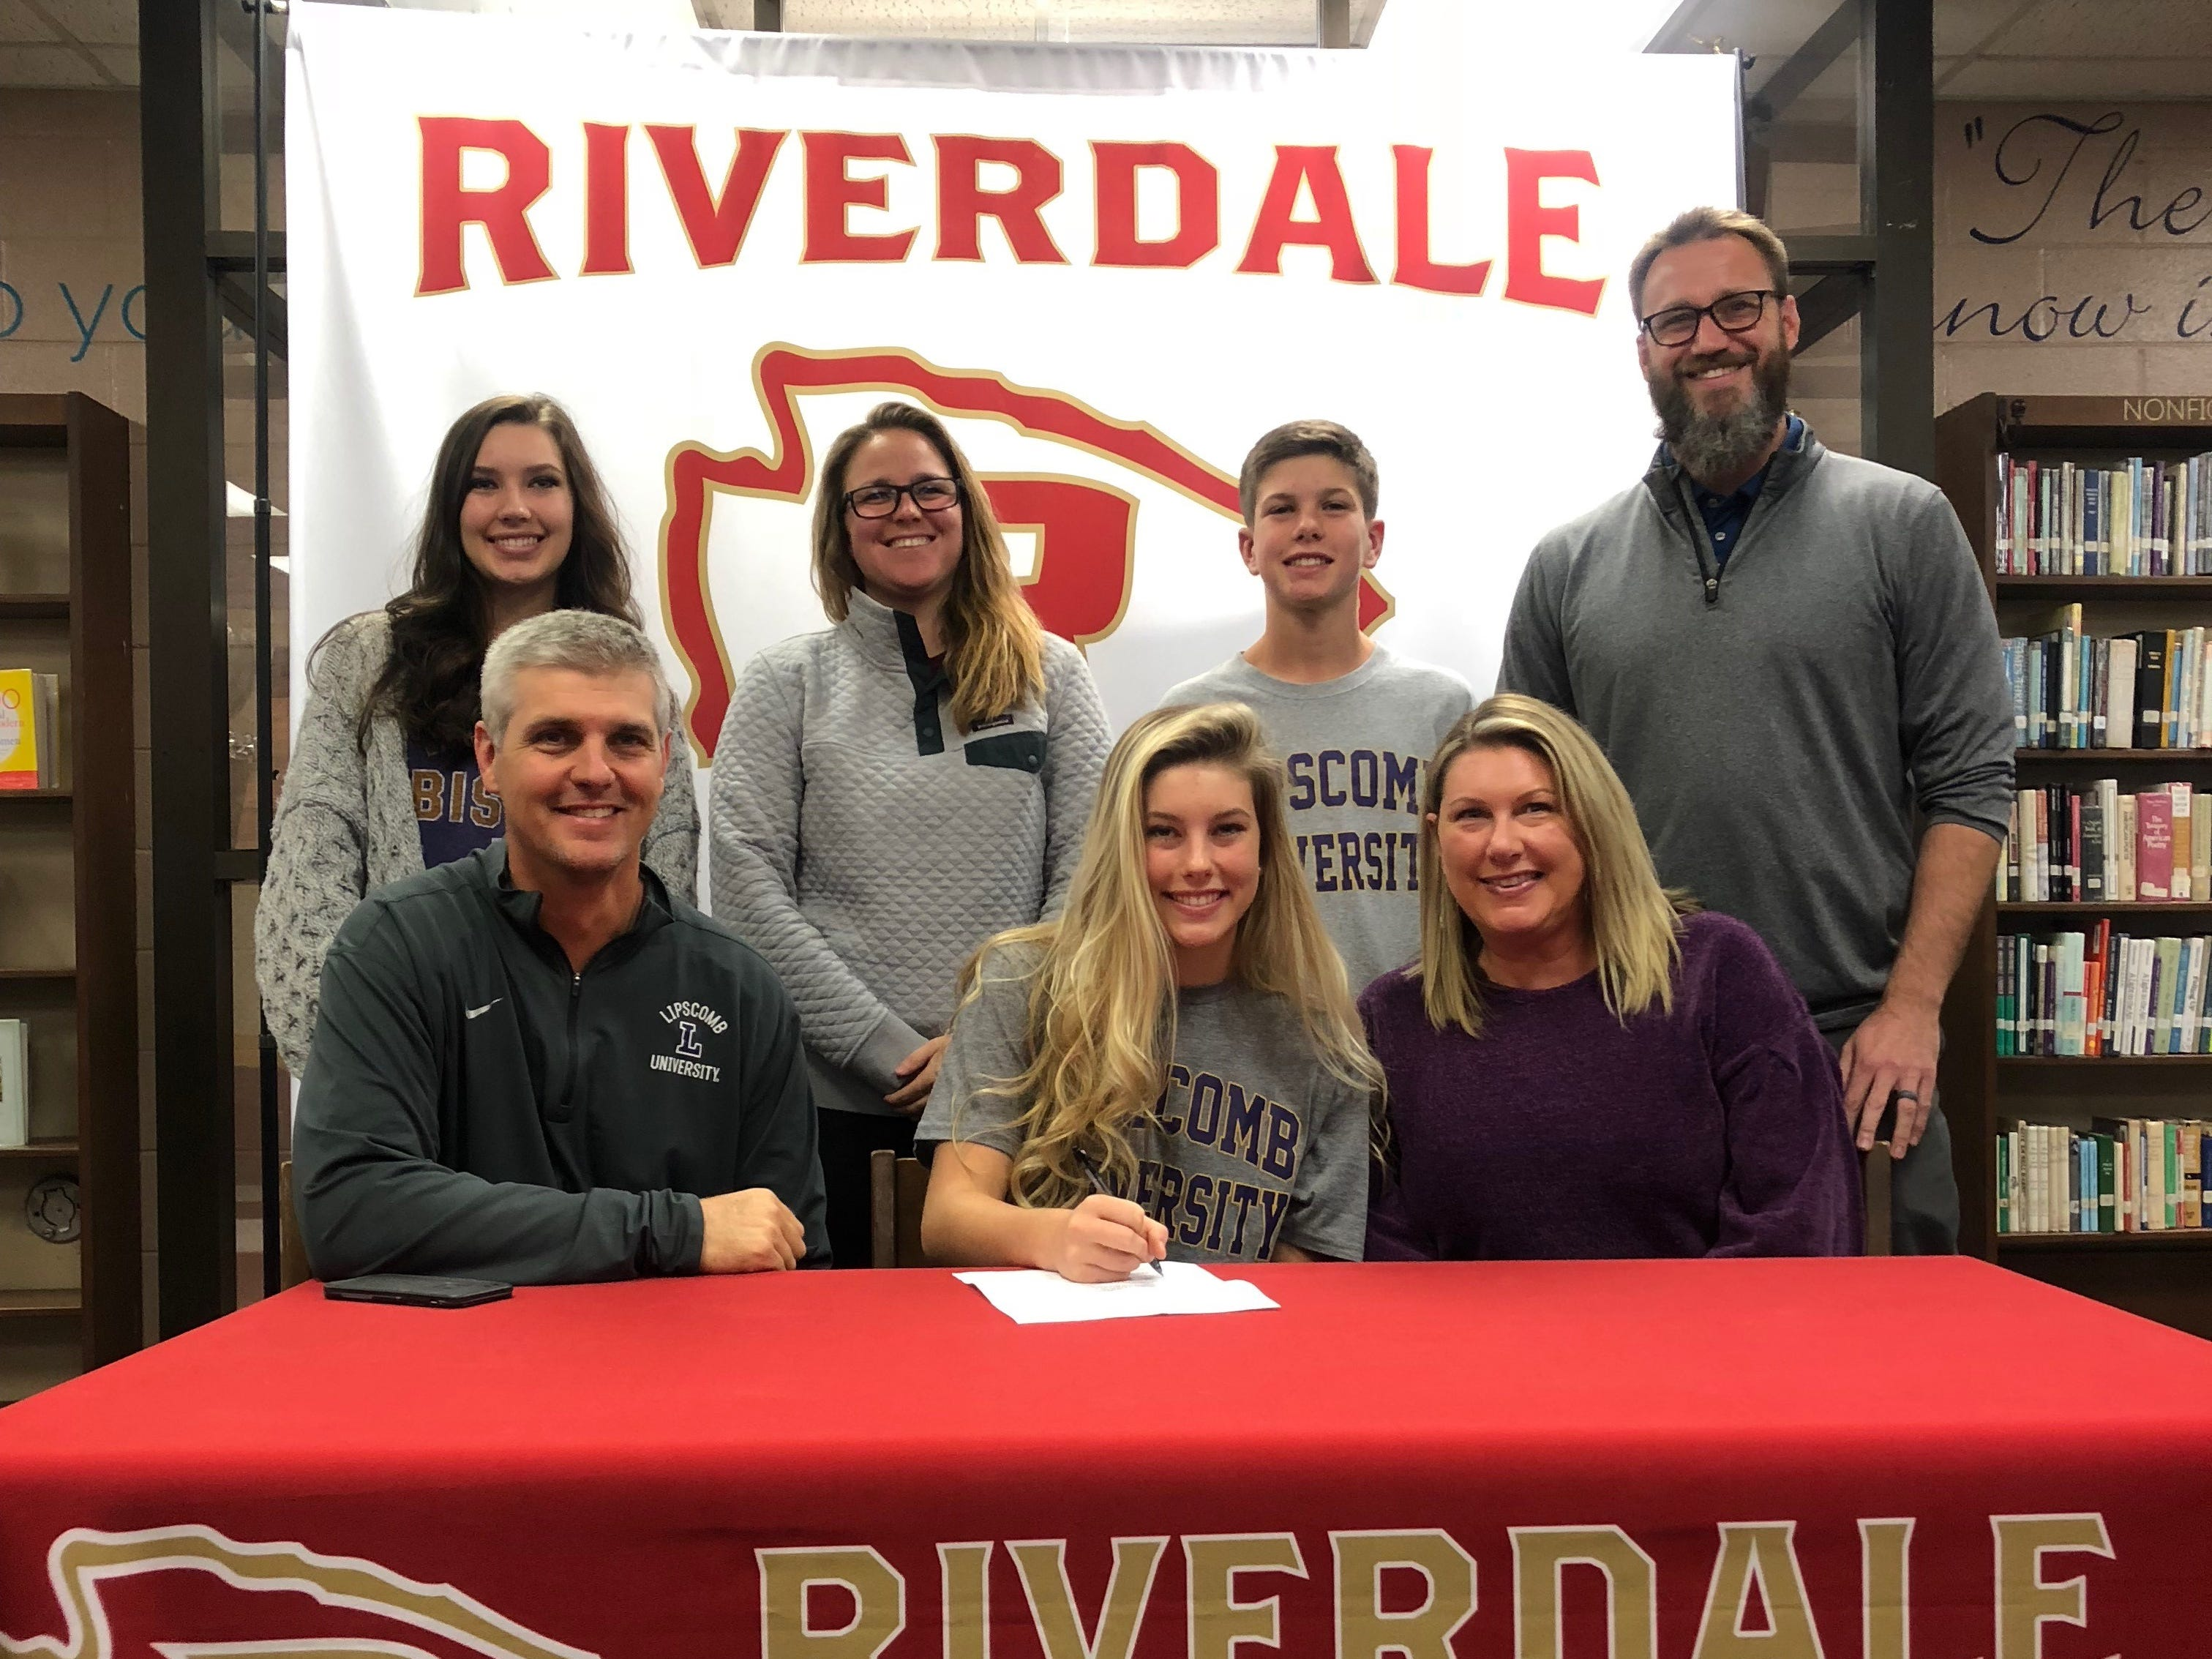 Riverdale's Jalyn Holcomb signed to play basketball at Lipscomb Wednesday. Pictured in the front row are (l-r) father Kelly Holcomb, Jalyn, mother Lorie Holcomb. In the back row are sister Kellyn Holcomb, Riverdale coach Amy Josephson, brother Jameson Holcomb and Riverdale assistant principal Lee Nachand.